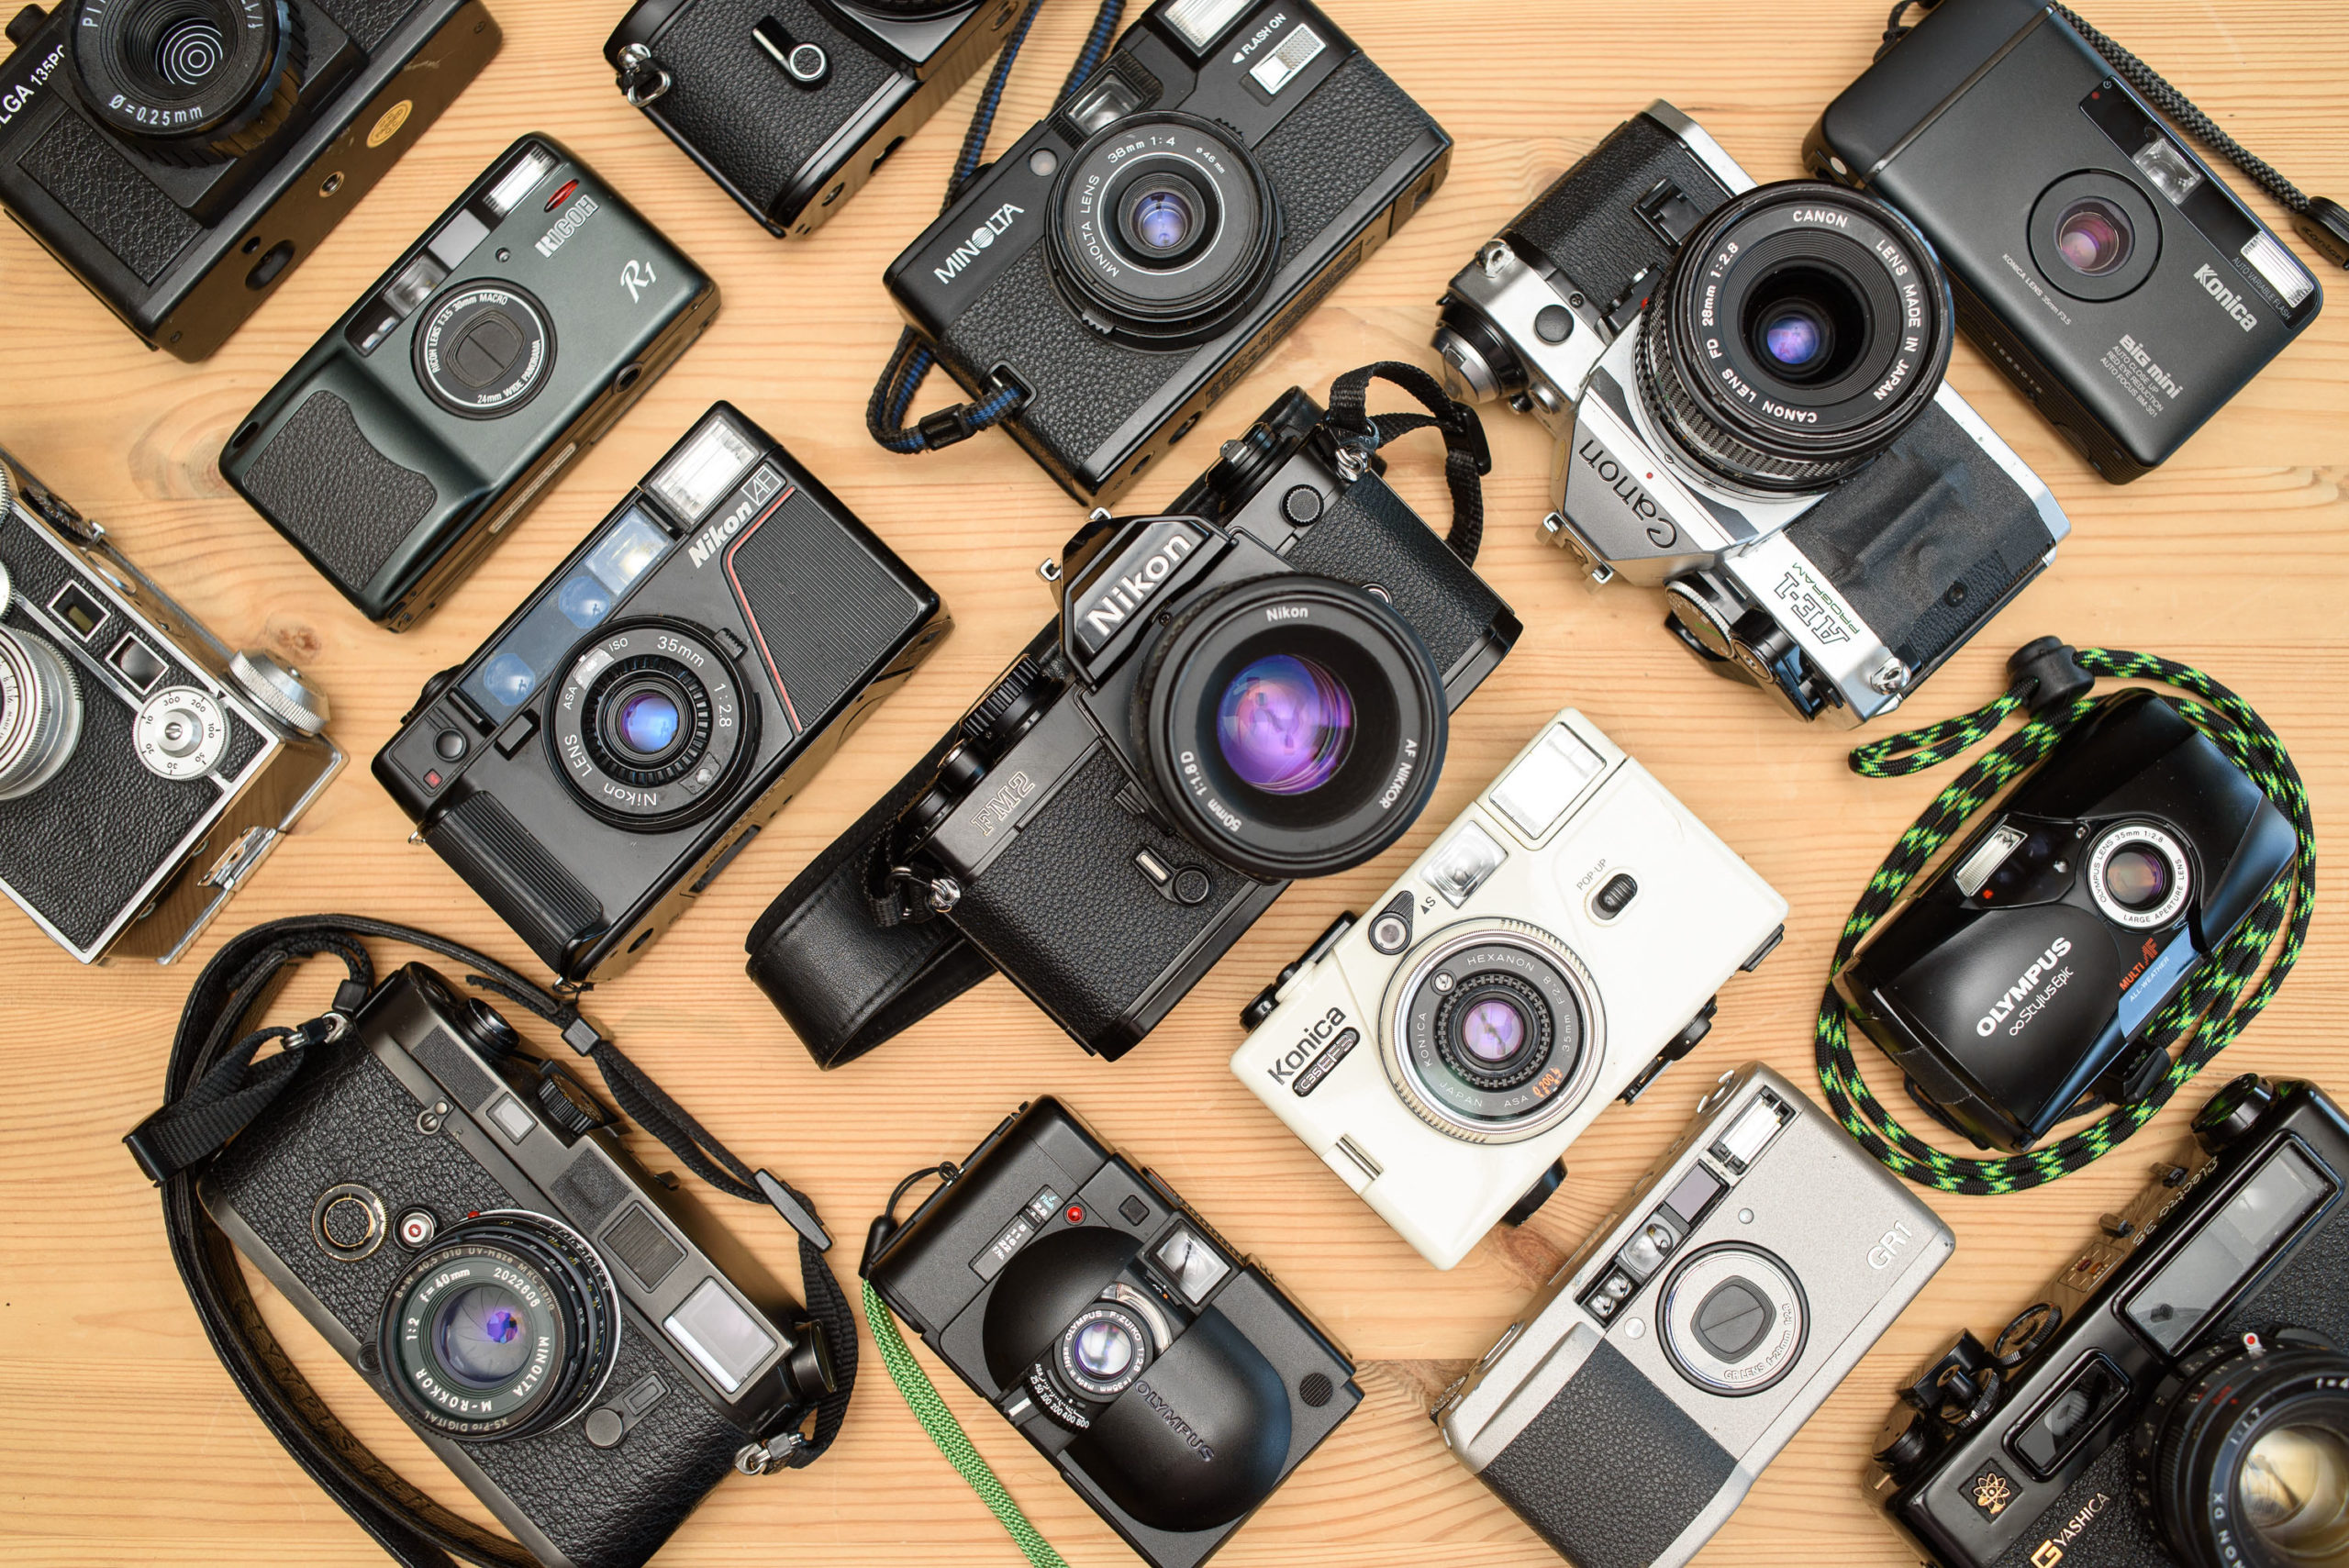 The absolute beginner's guide to film photography: 7 common camera types